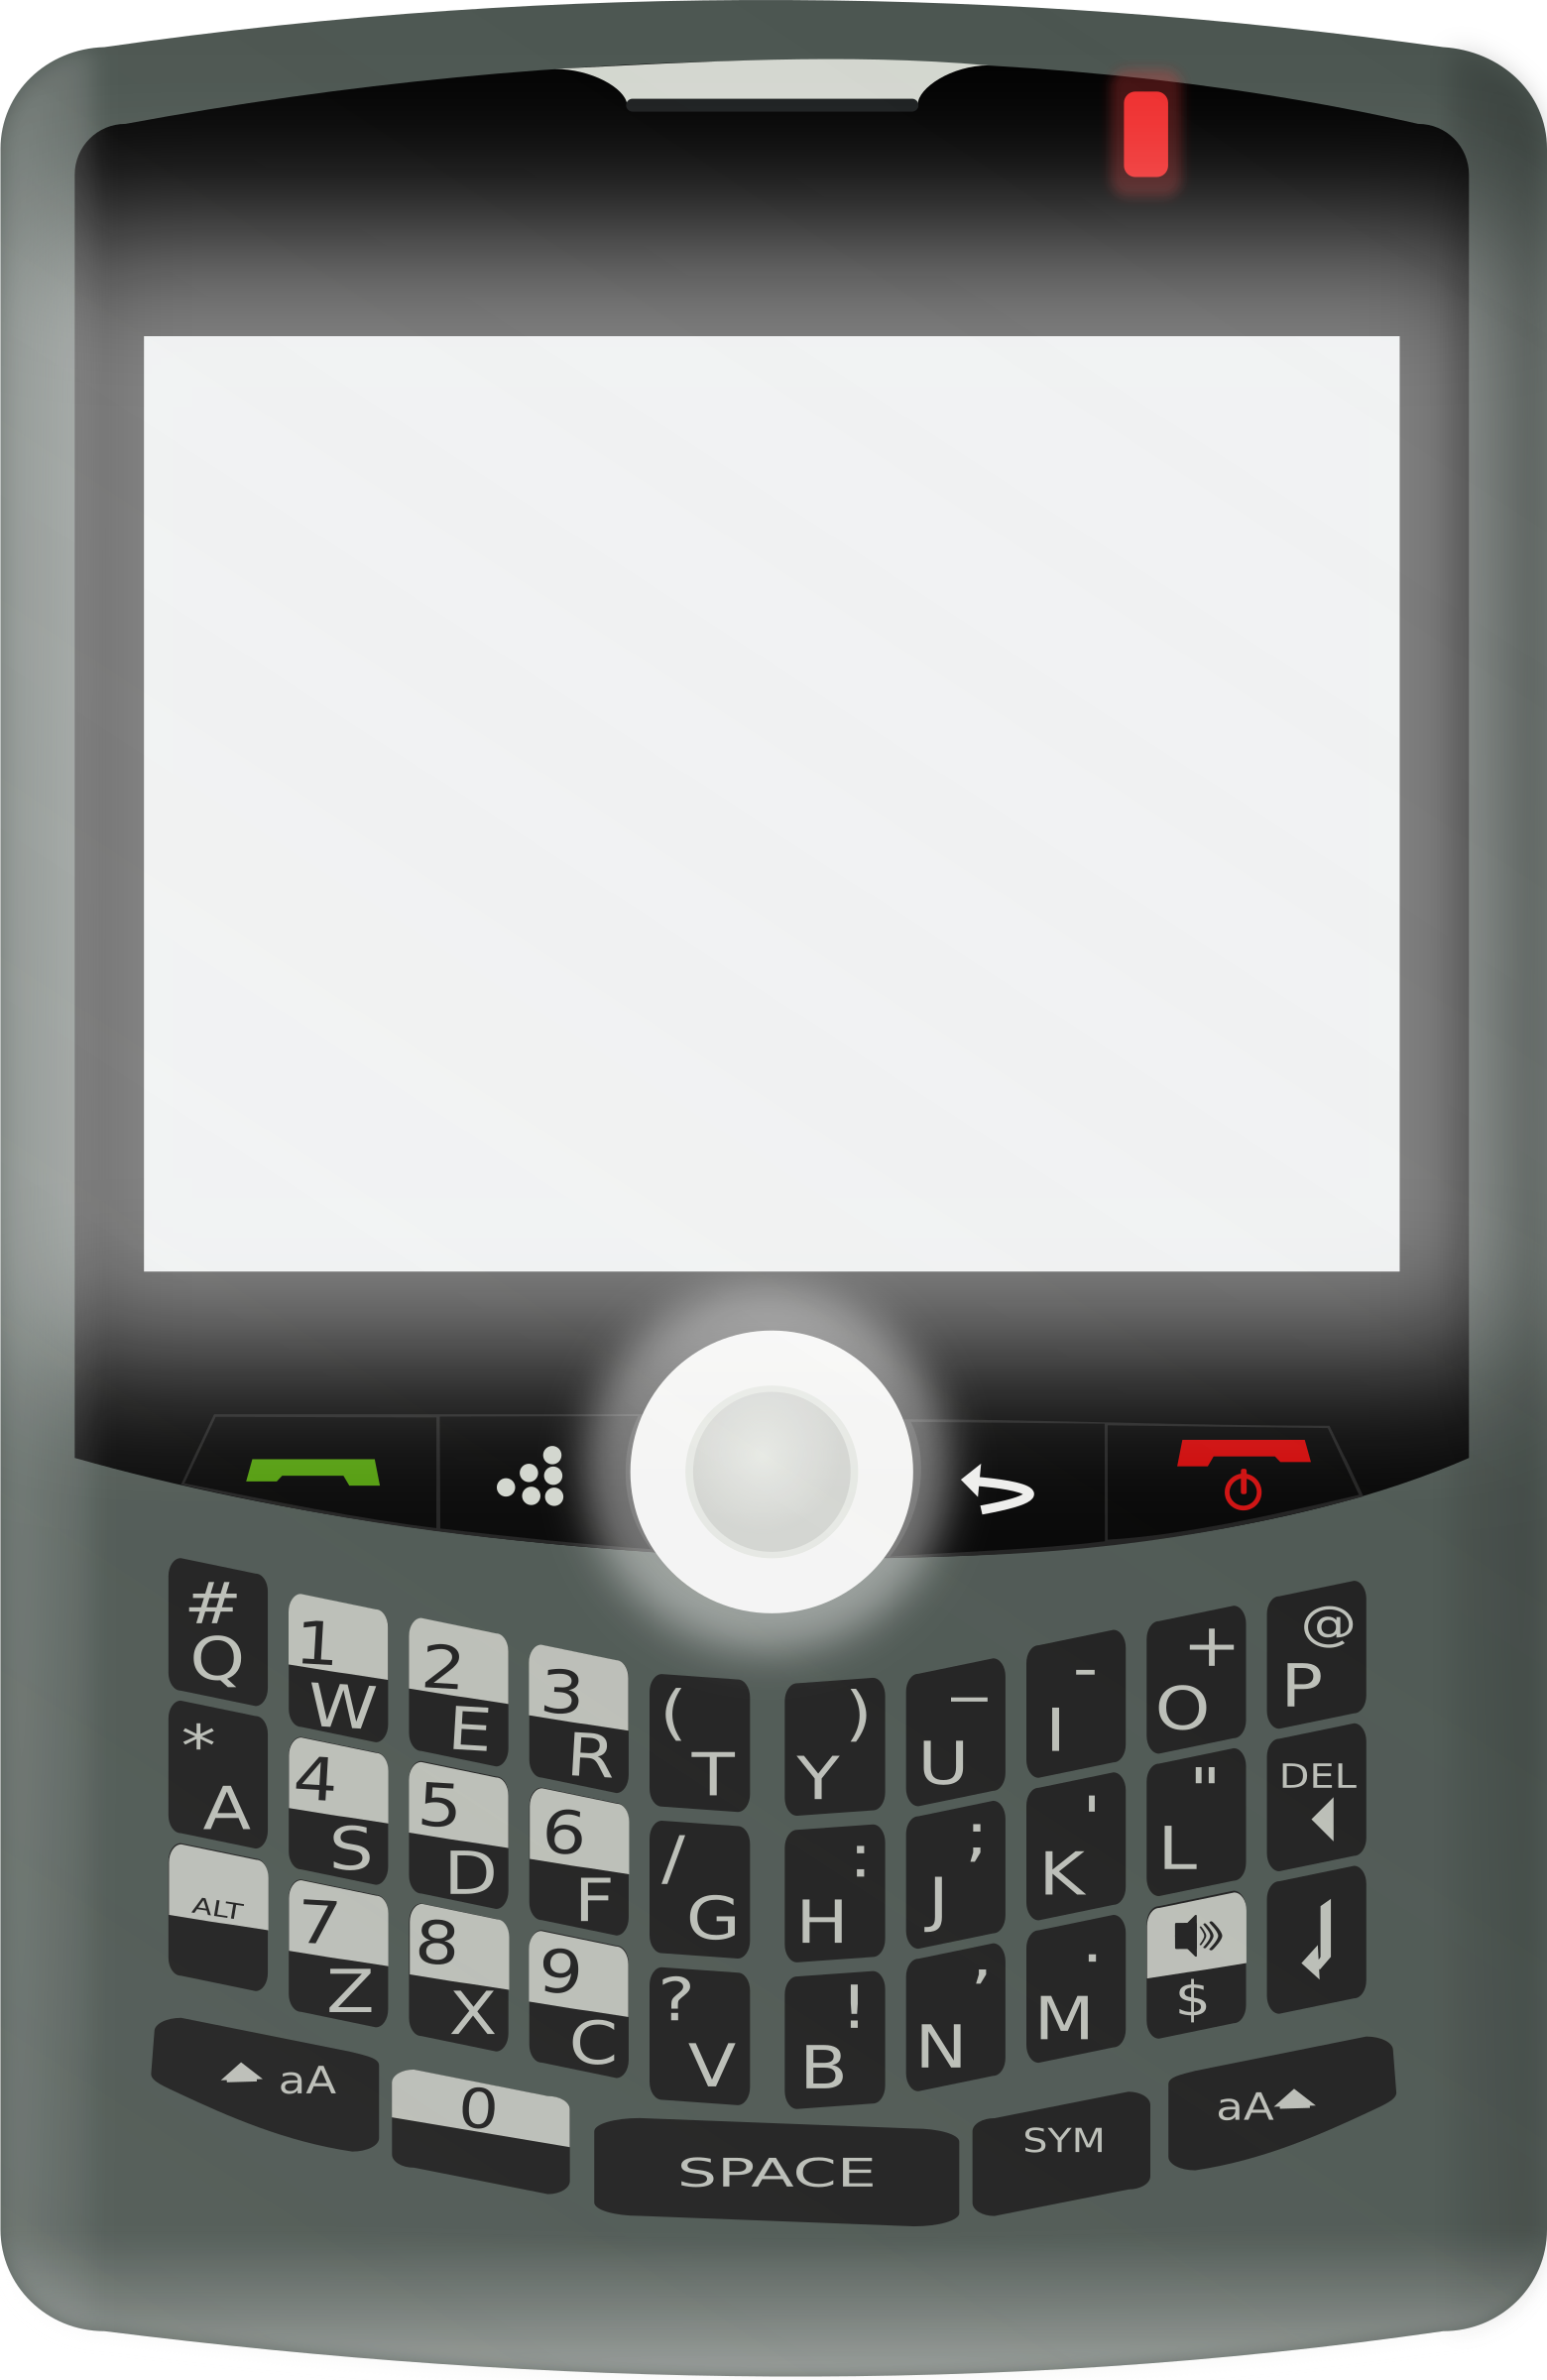 Blackberry Curve 8330 by JoelM